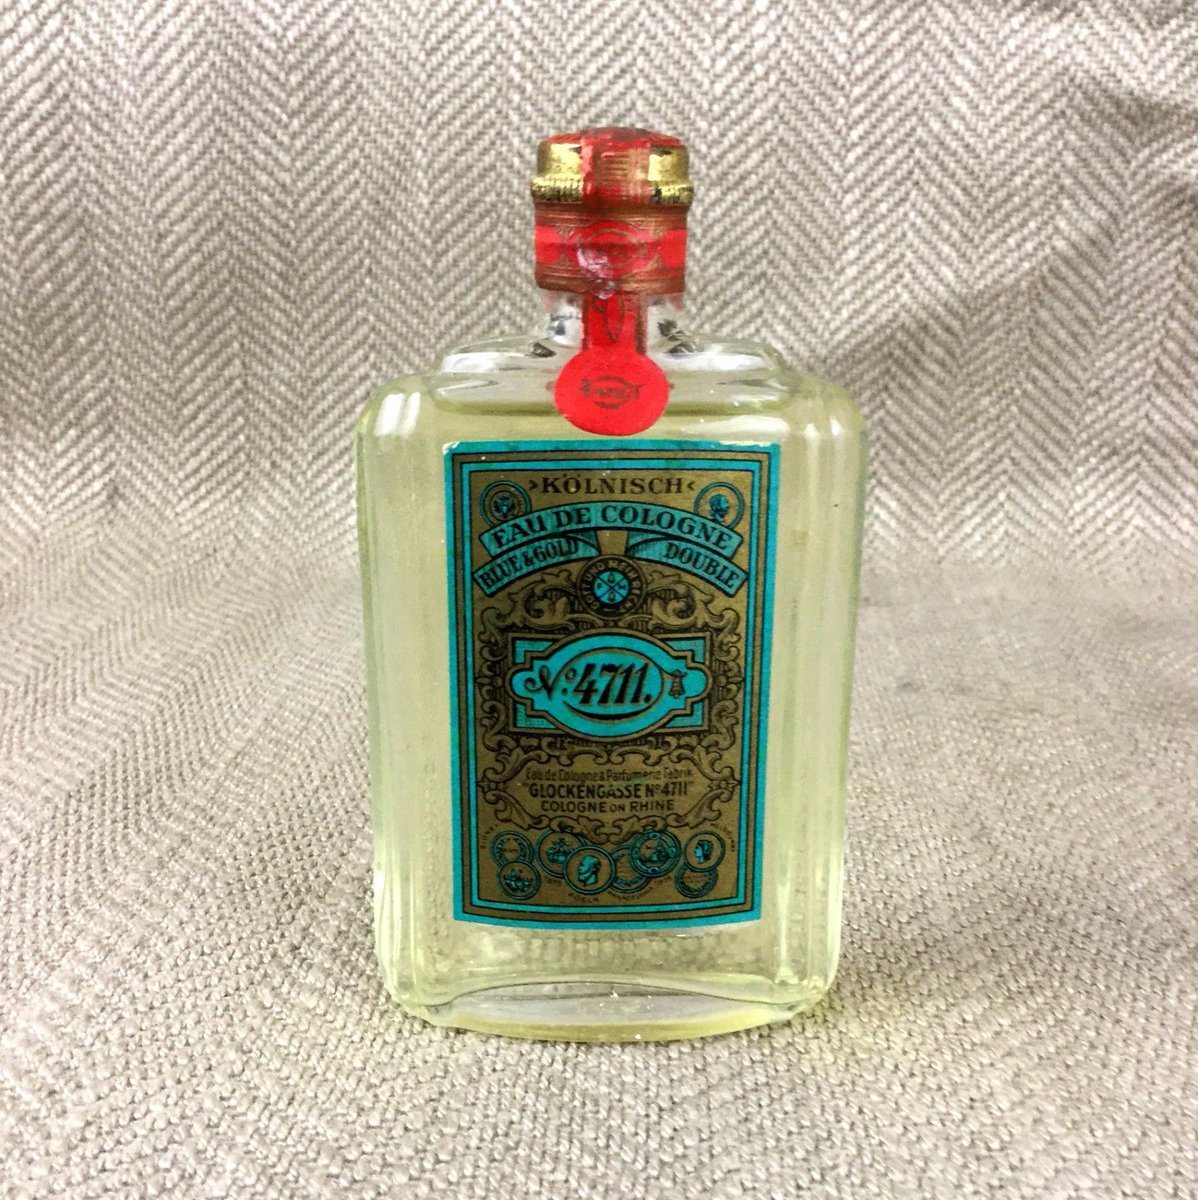 Vintage bottle of unopened 4711 cologne #perfume #vanity #vintageperfume #scent #4711 #collectibles  http:// ebay.eu/2rE99od  &nbsp;  <br>http://pic.twitter.com/O9VOlAolIE